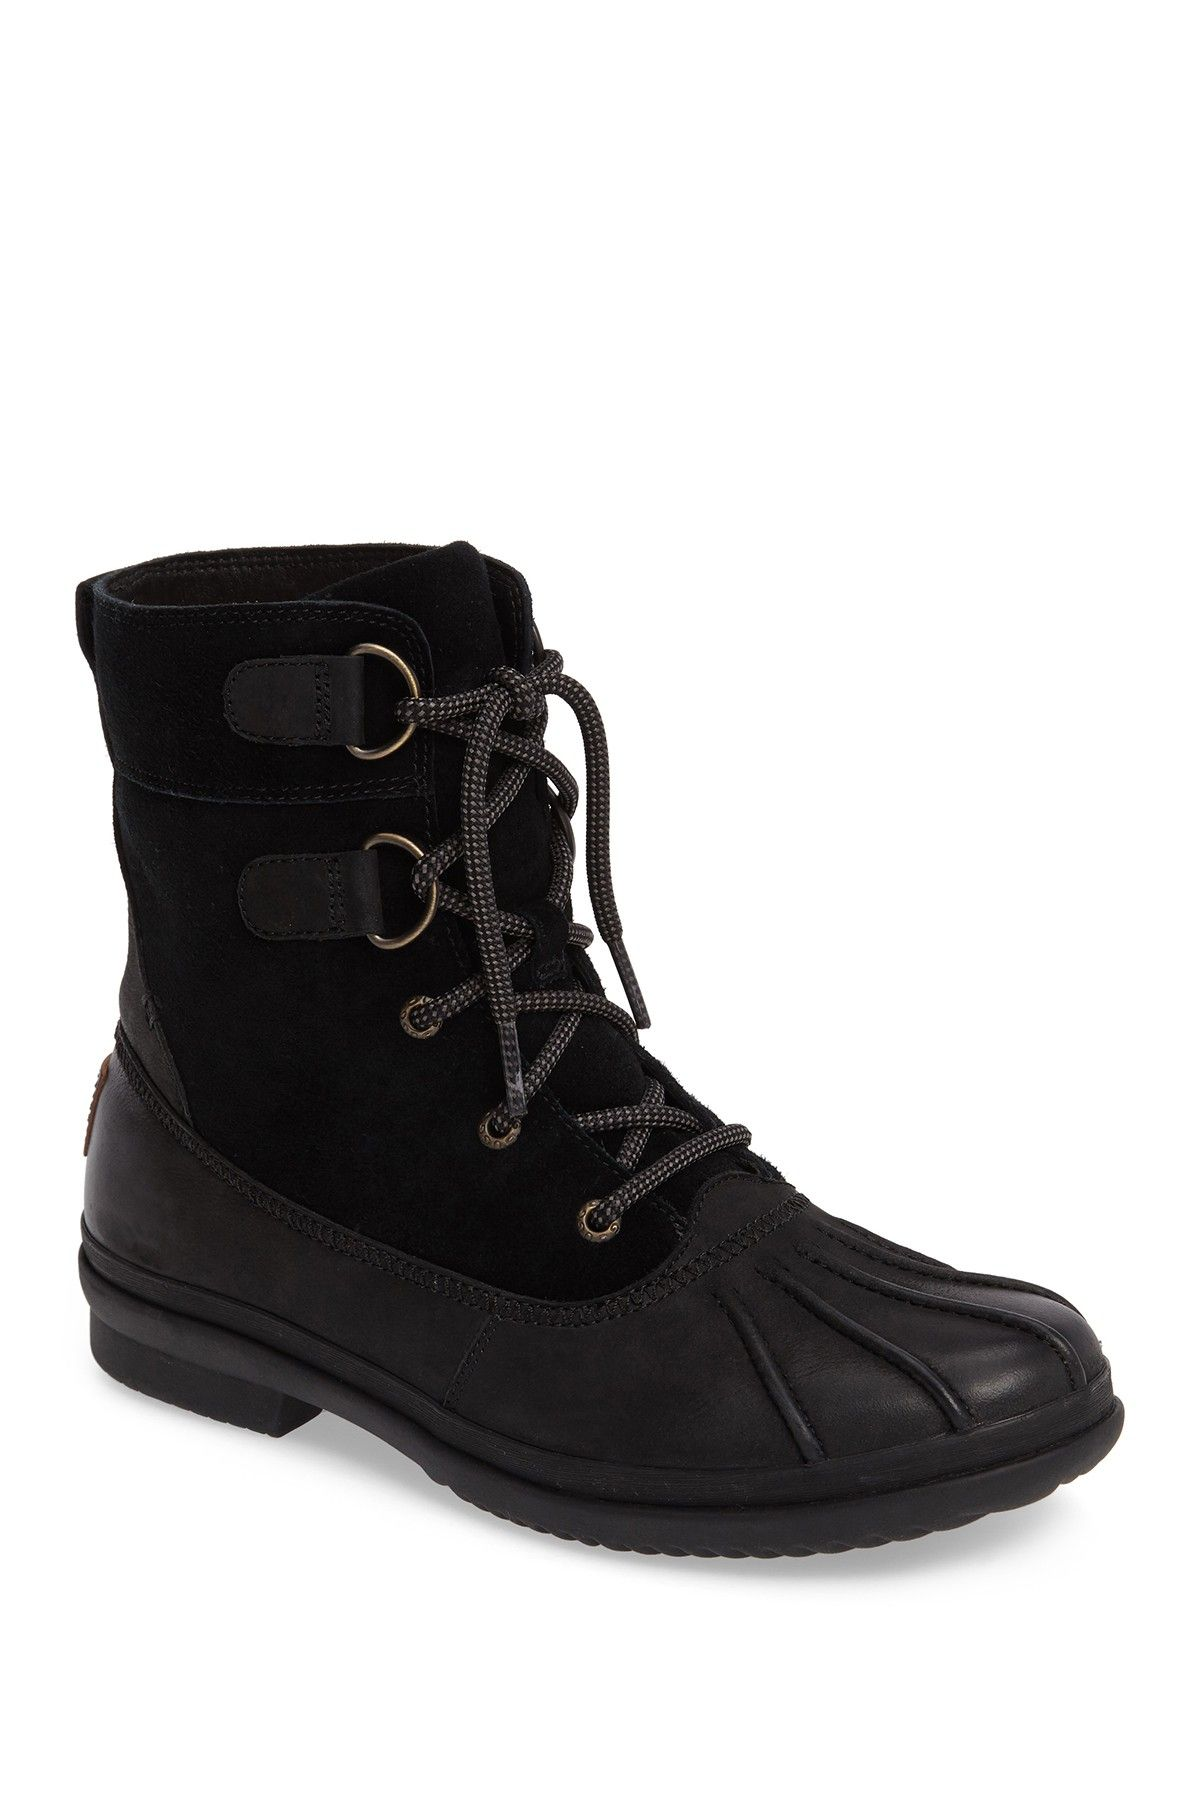 UGG   Azaria Waterproof Lace-Up Duck